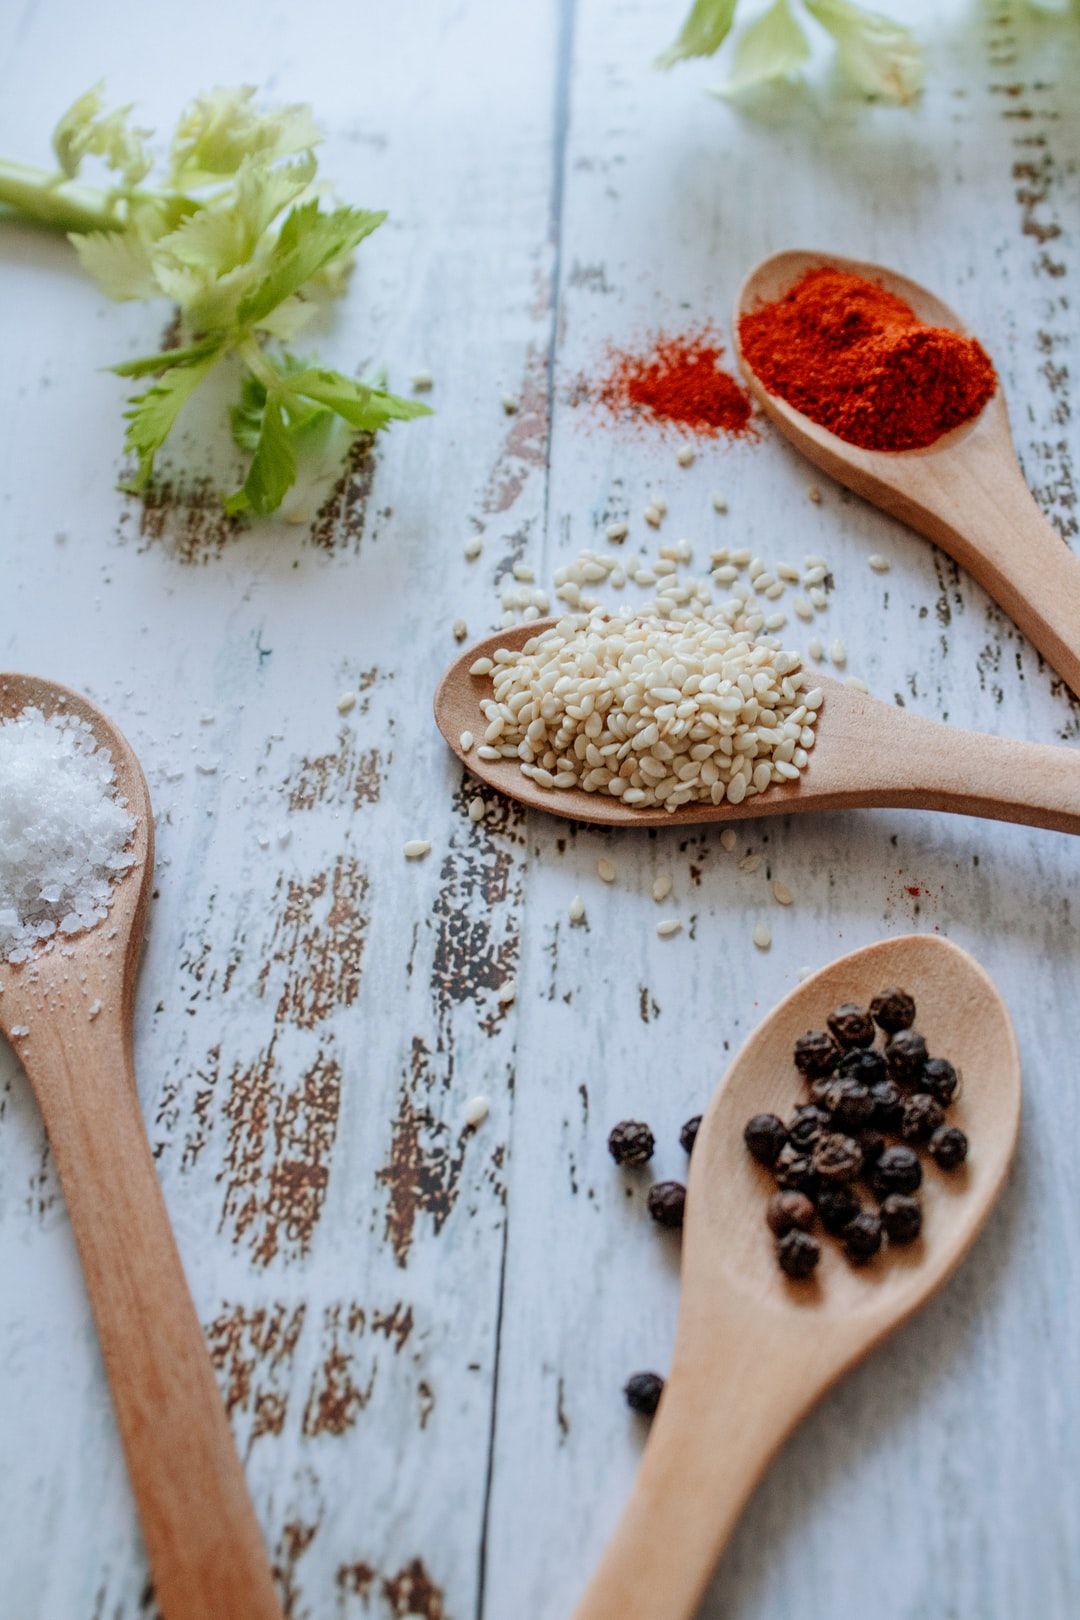 Spices and wooden spoons. Black pepper, sea salt, sesame seeds and red red pepper